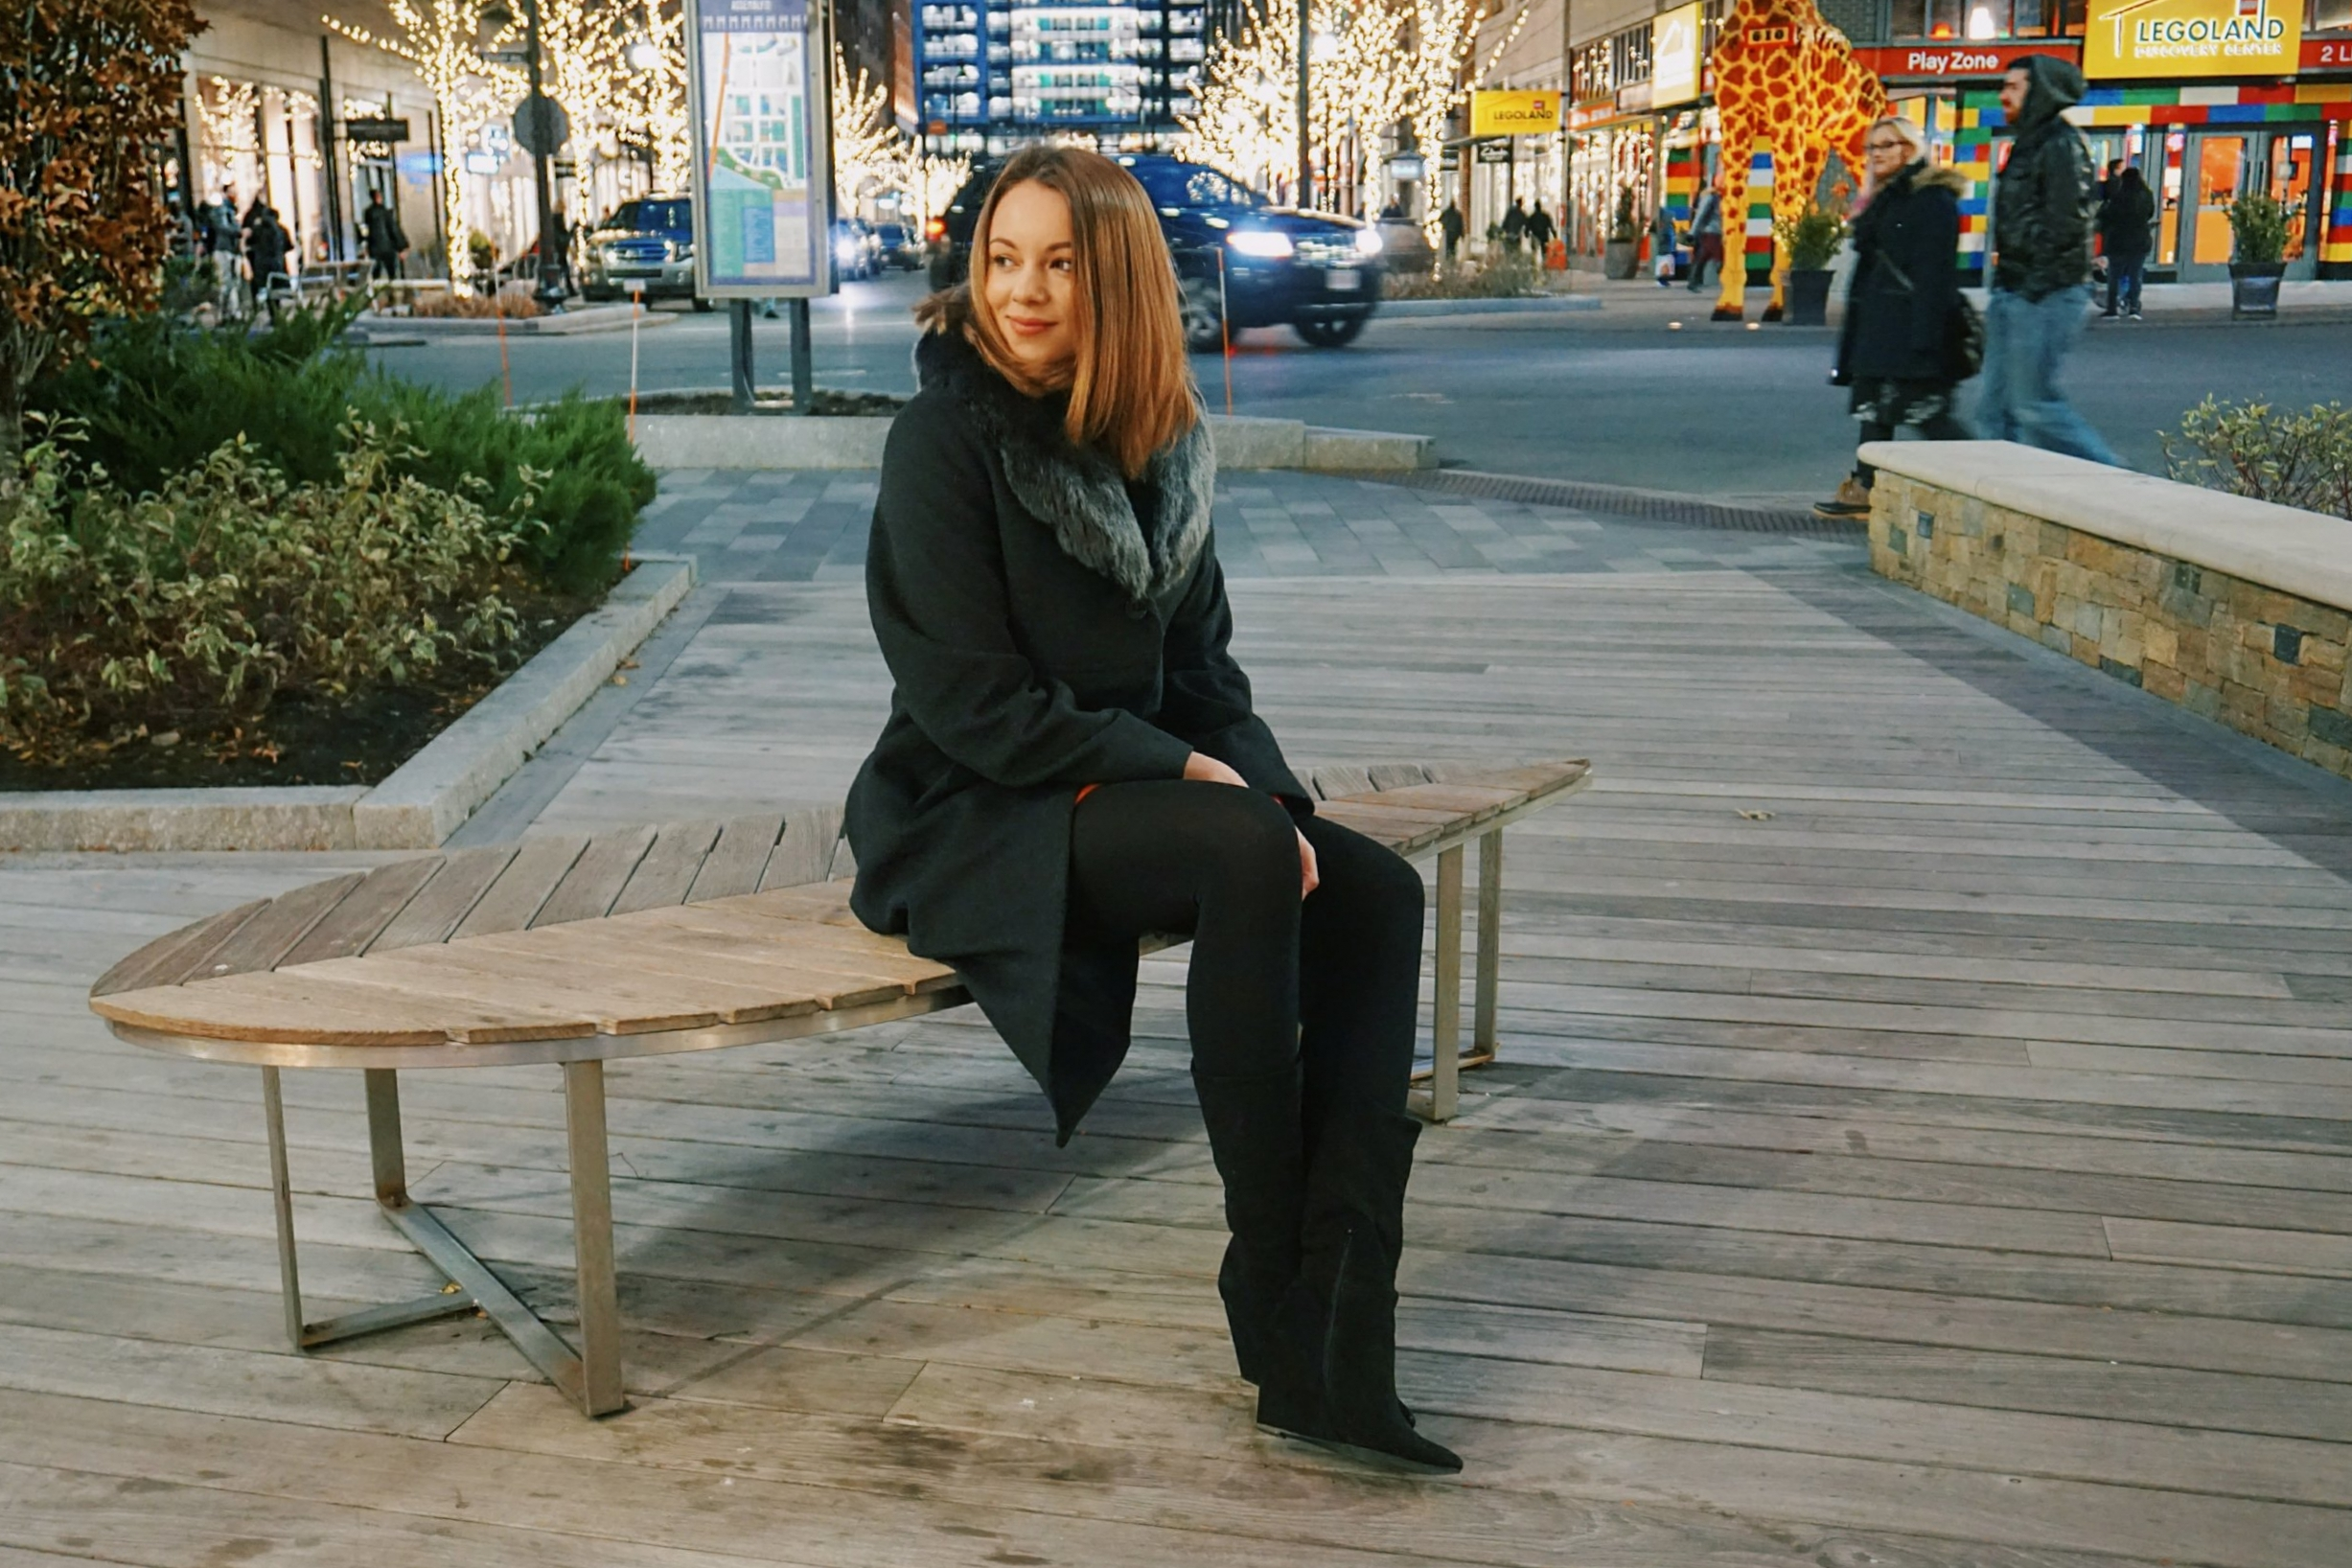 A beauty blogger sitting on the bench surrounded by Christmas lights and small shops.